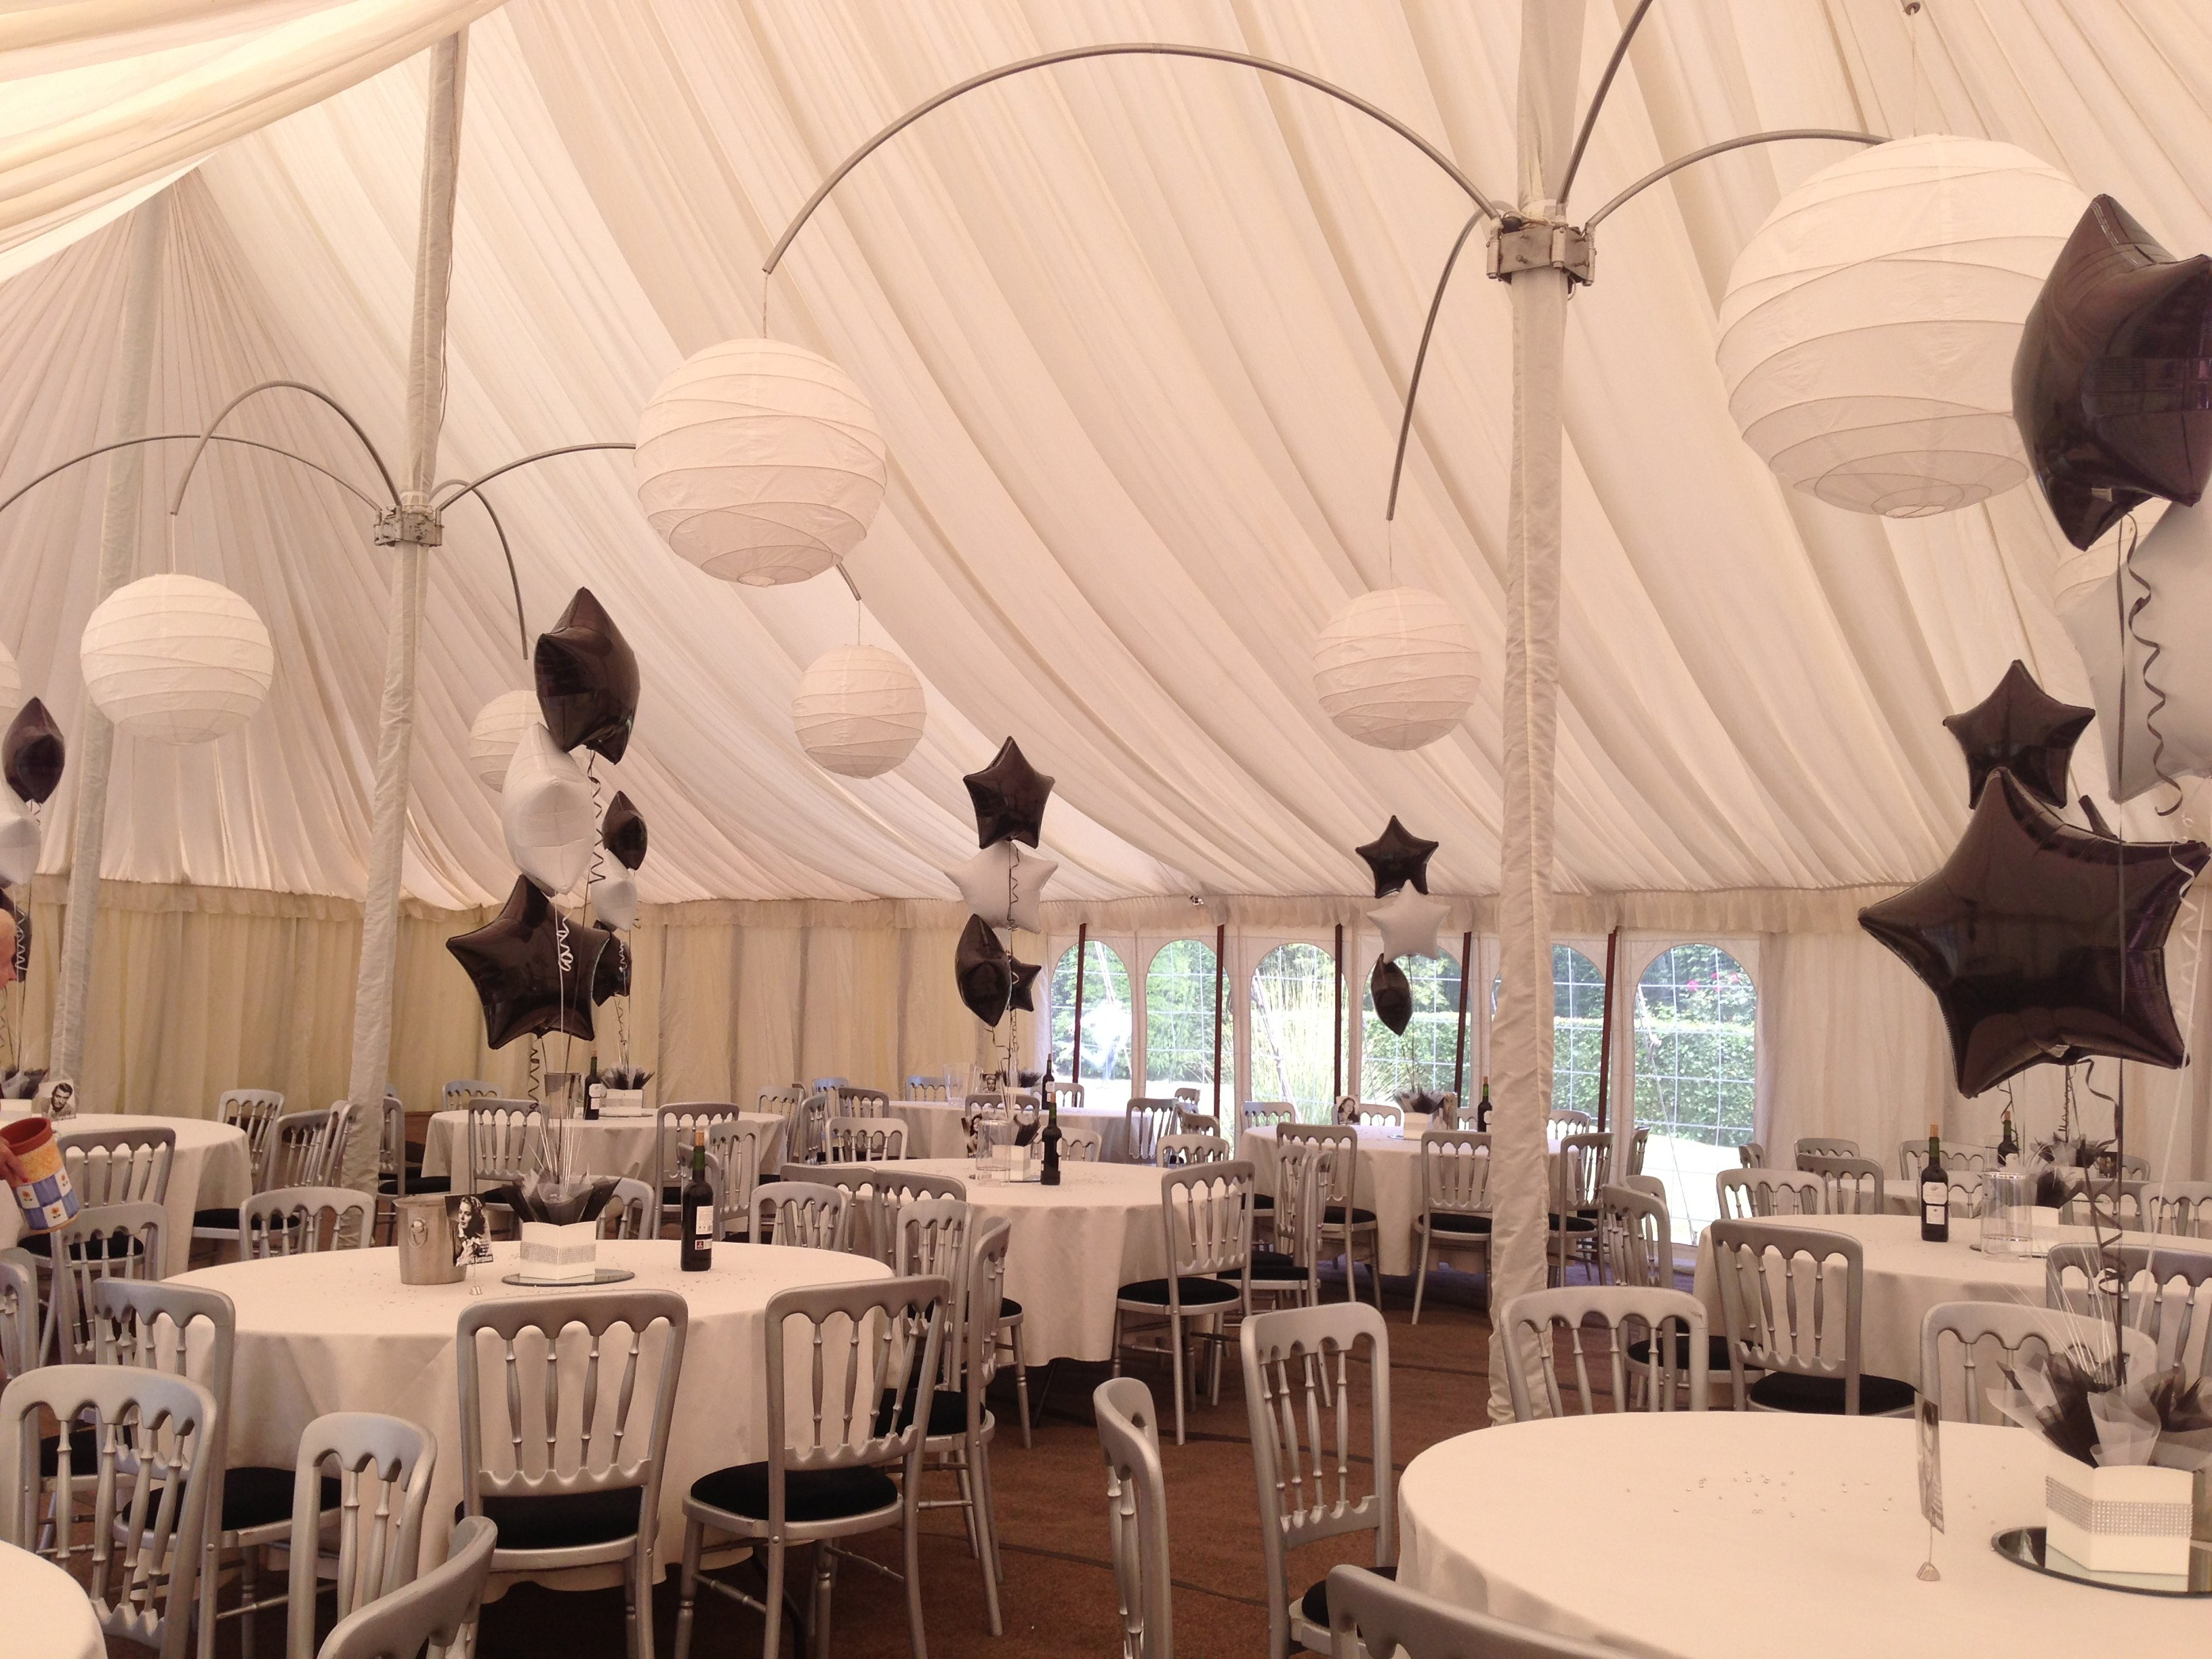 Party balloons in a marquee